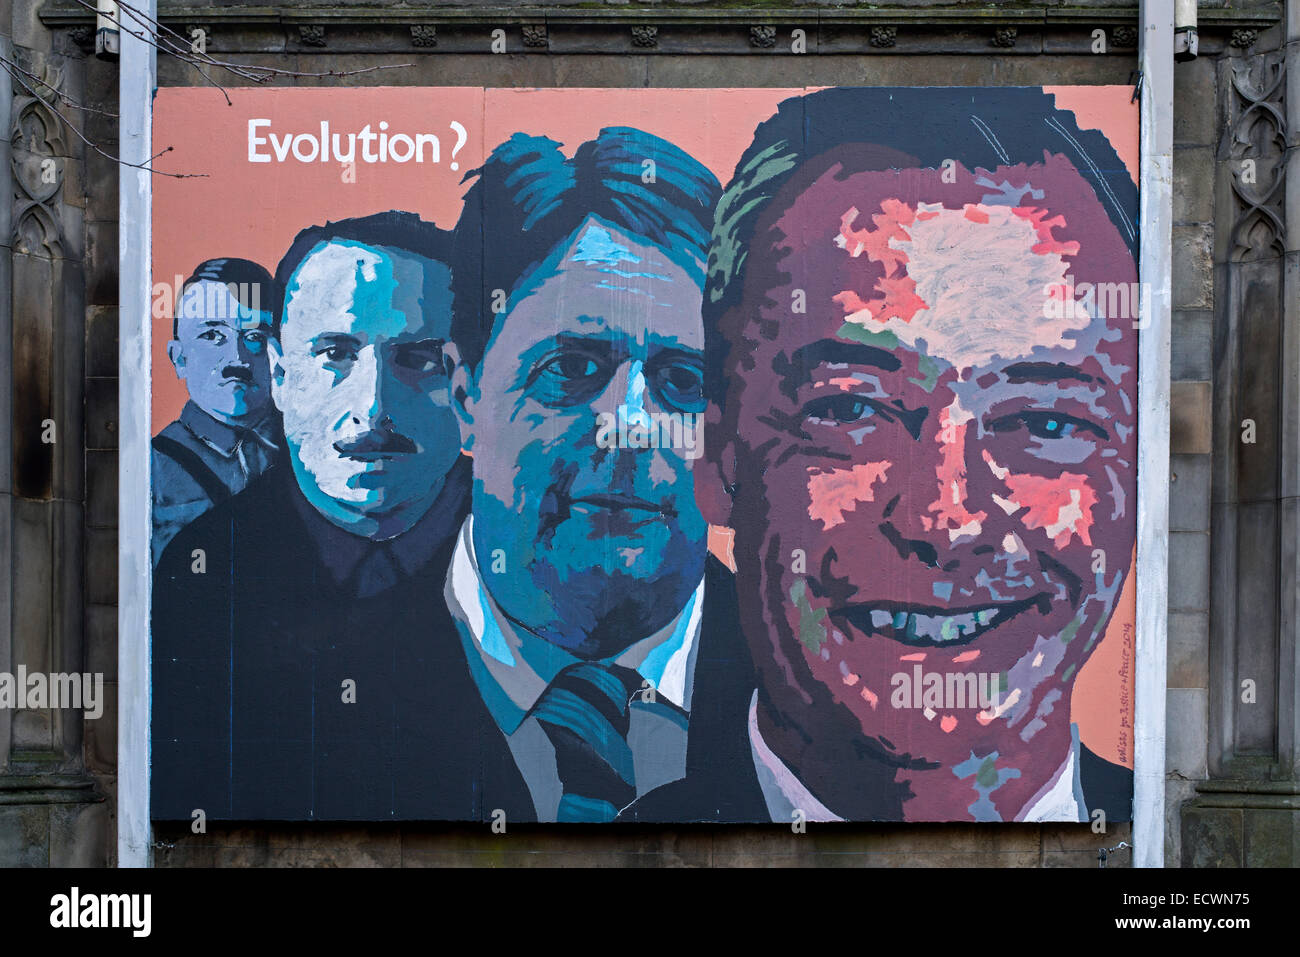 Controversial mural outside St John's Episcopal Church on Princes Street Edinburgh depicting right wing political - Stock Image